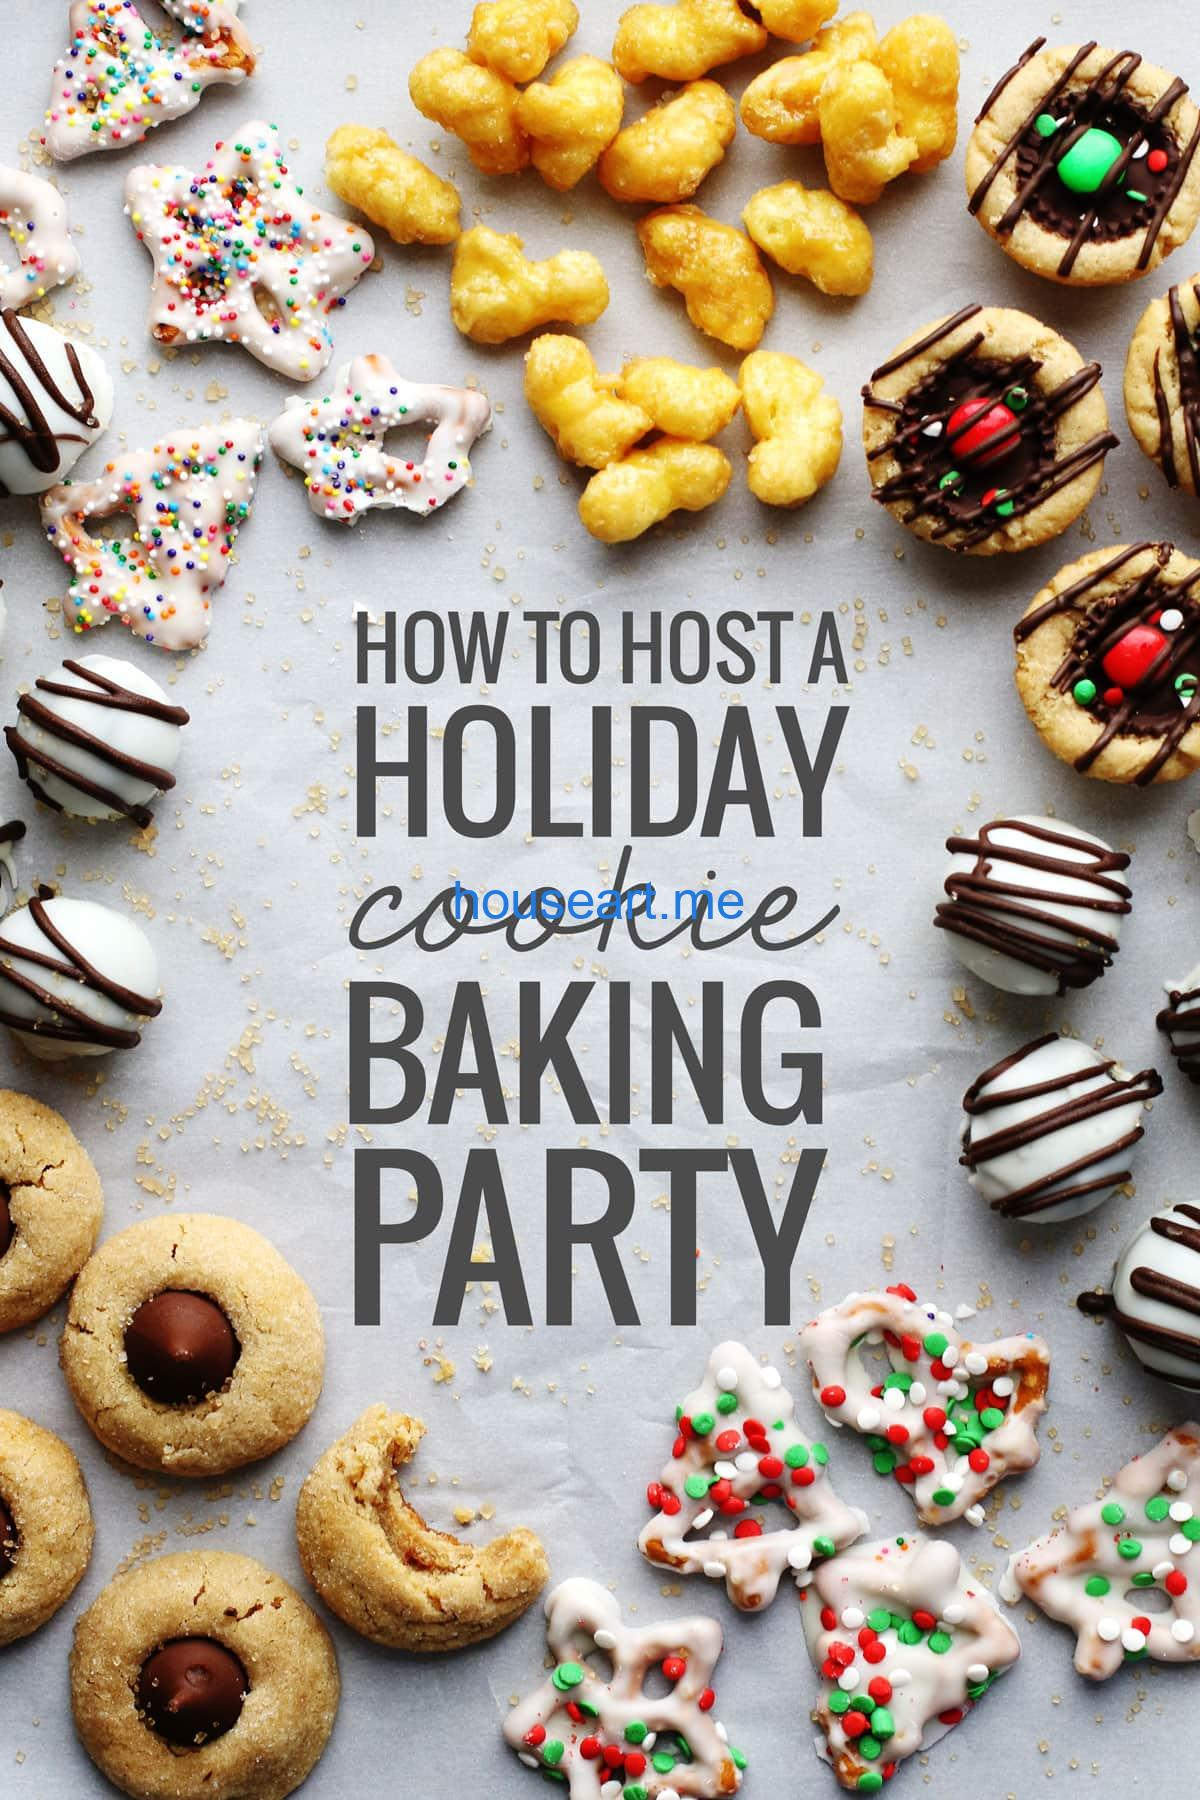 How to host a holiday cookie baking party with cookies and treats.